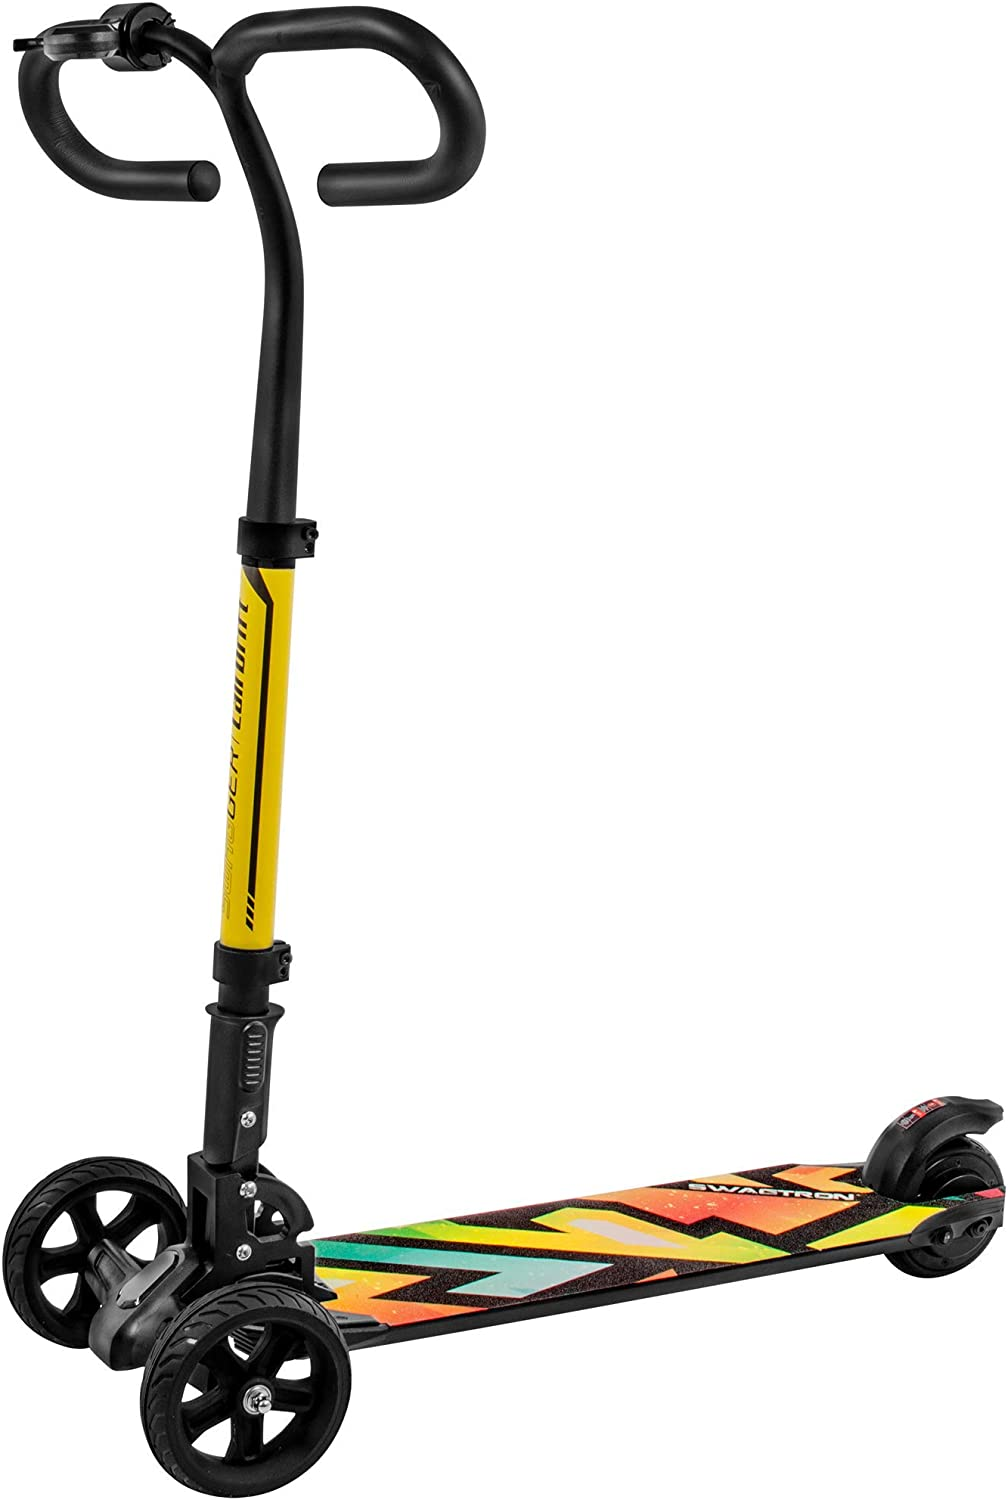 SWAGTRON CALI DRIFT THREE WHEEL ELECTRIC SCOOTER| 3-WHEELED ELECTRIC SCOOTER